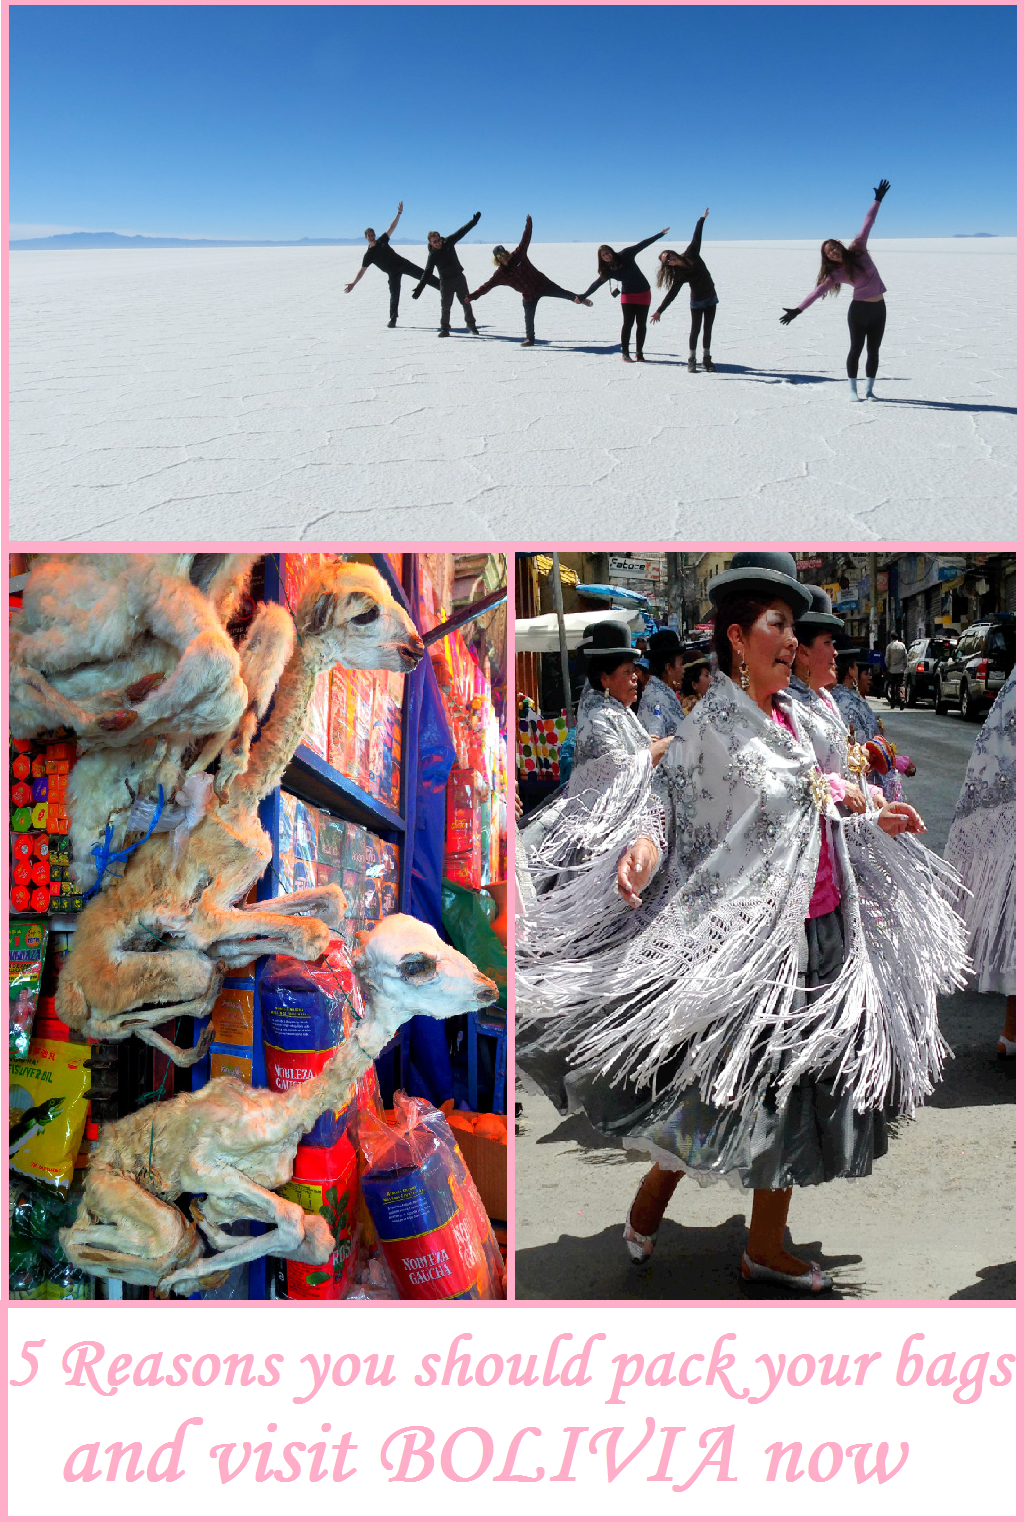 5 Reasons you should pack your bags and head to Bolivia right now. From the Tiwanaku Ruins to the Salt flats to lake Titicaca, Bolivia is a highlight for almost every traveler through South America!